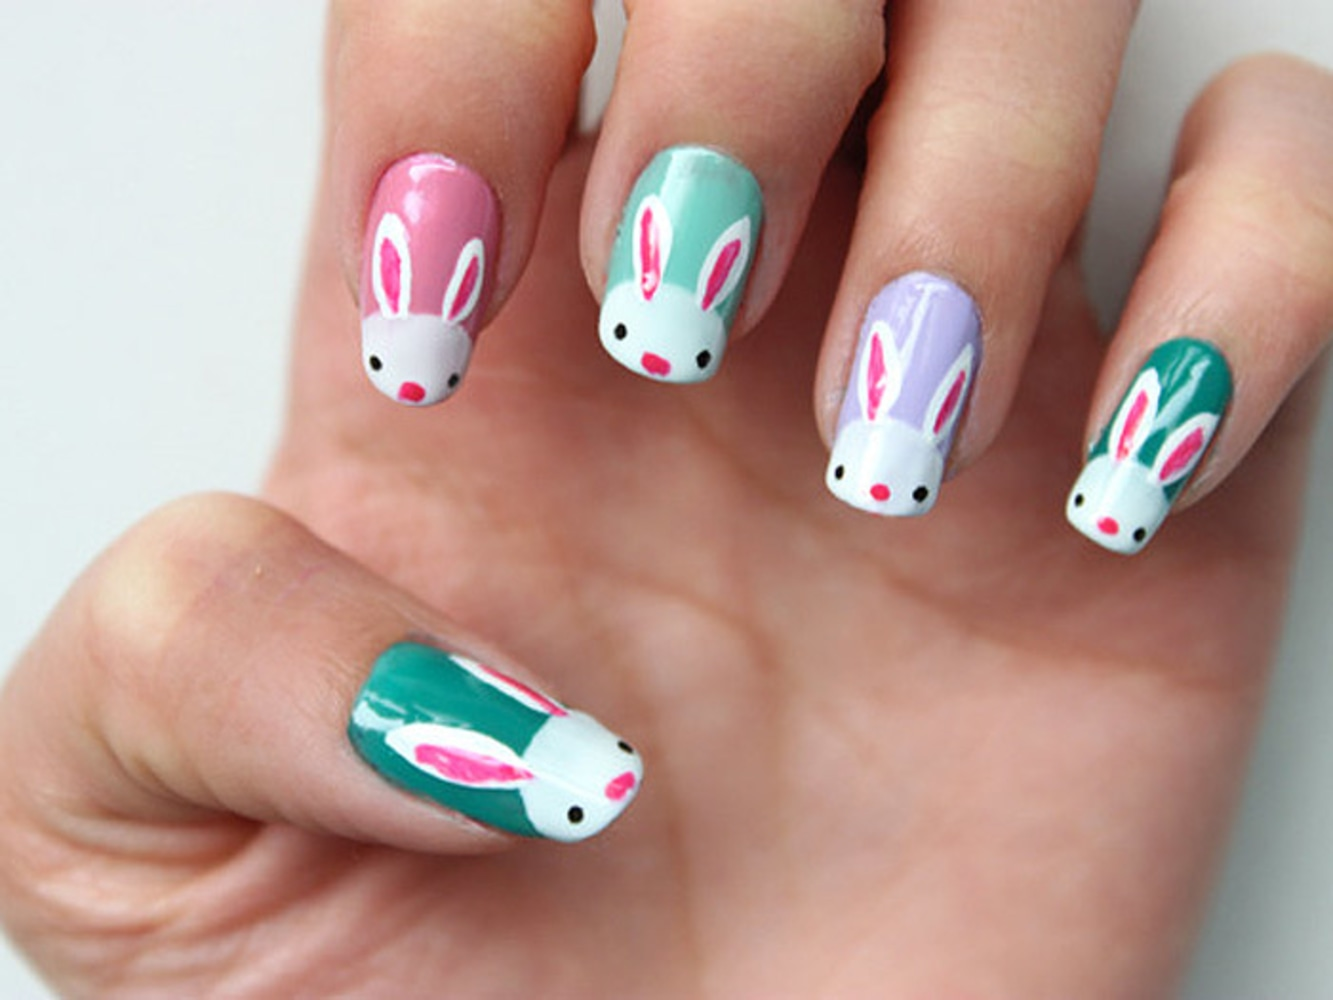 Easter nail art designs to DIY: Easter bunnies - Bunnies! Eggs! 10 D-I-Y Easter Nail Art Designs - NBC News